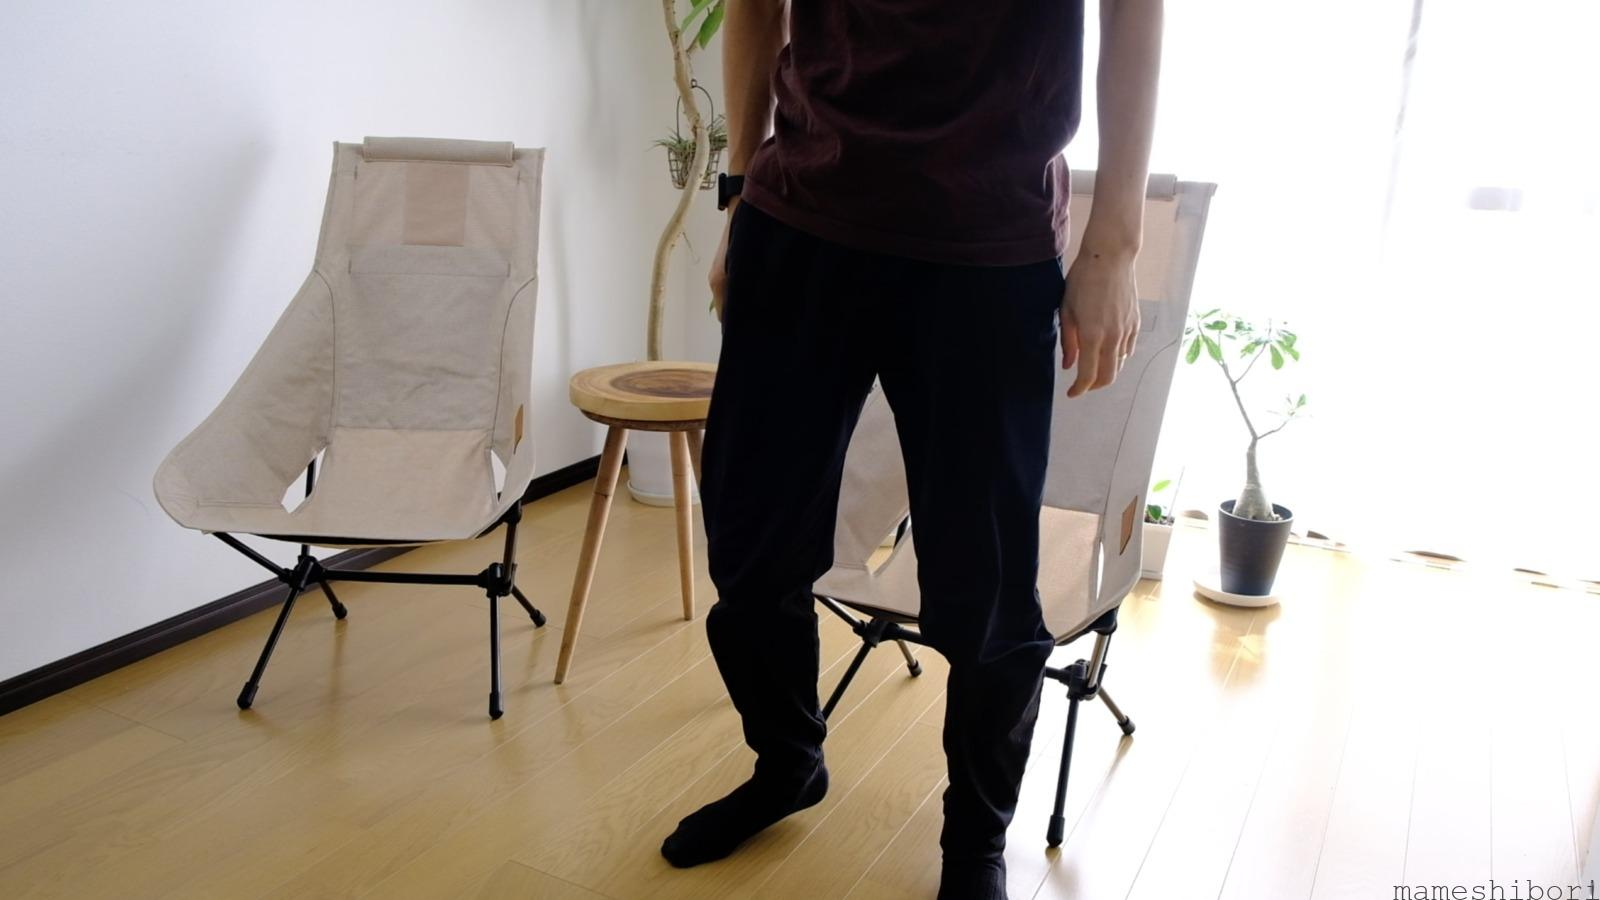 Helinox-chairtwohome-howtostand3